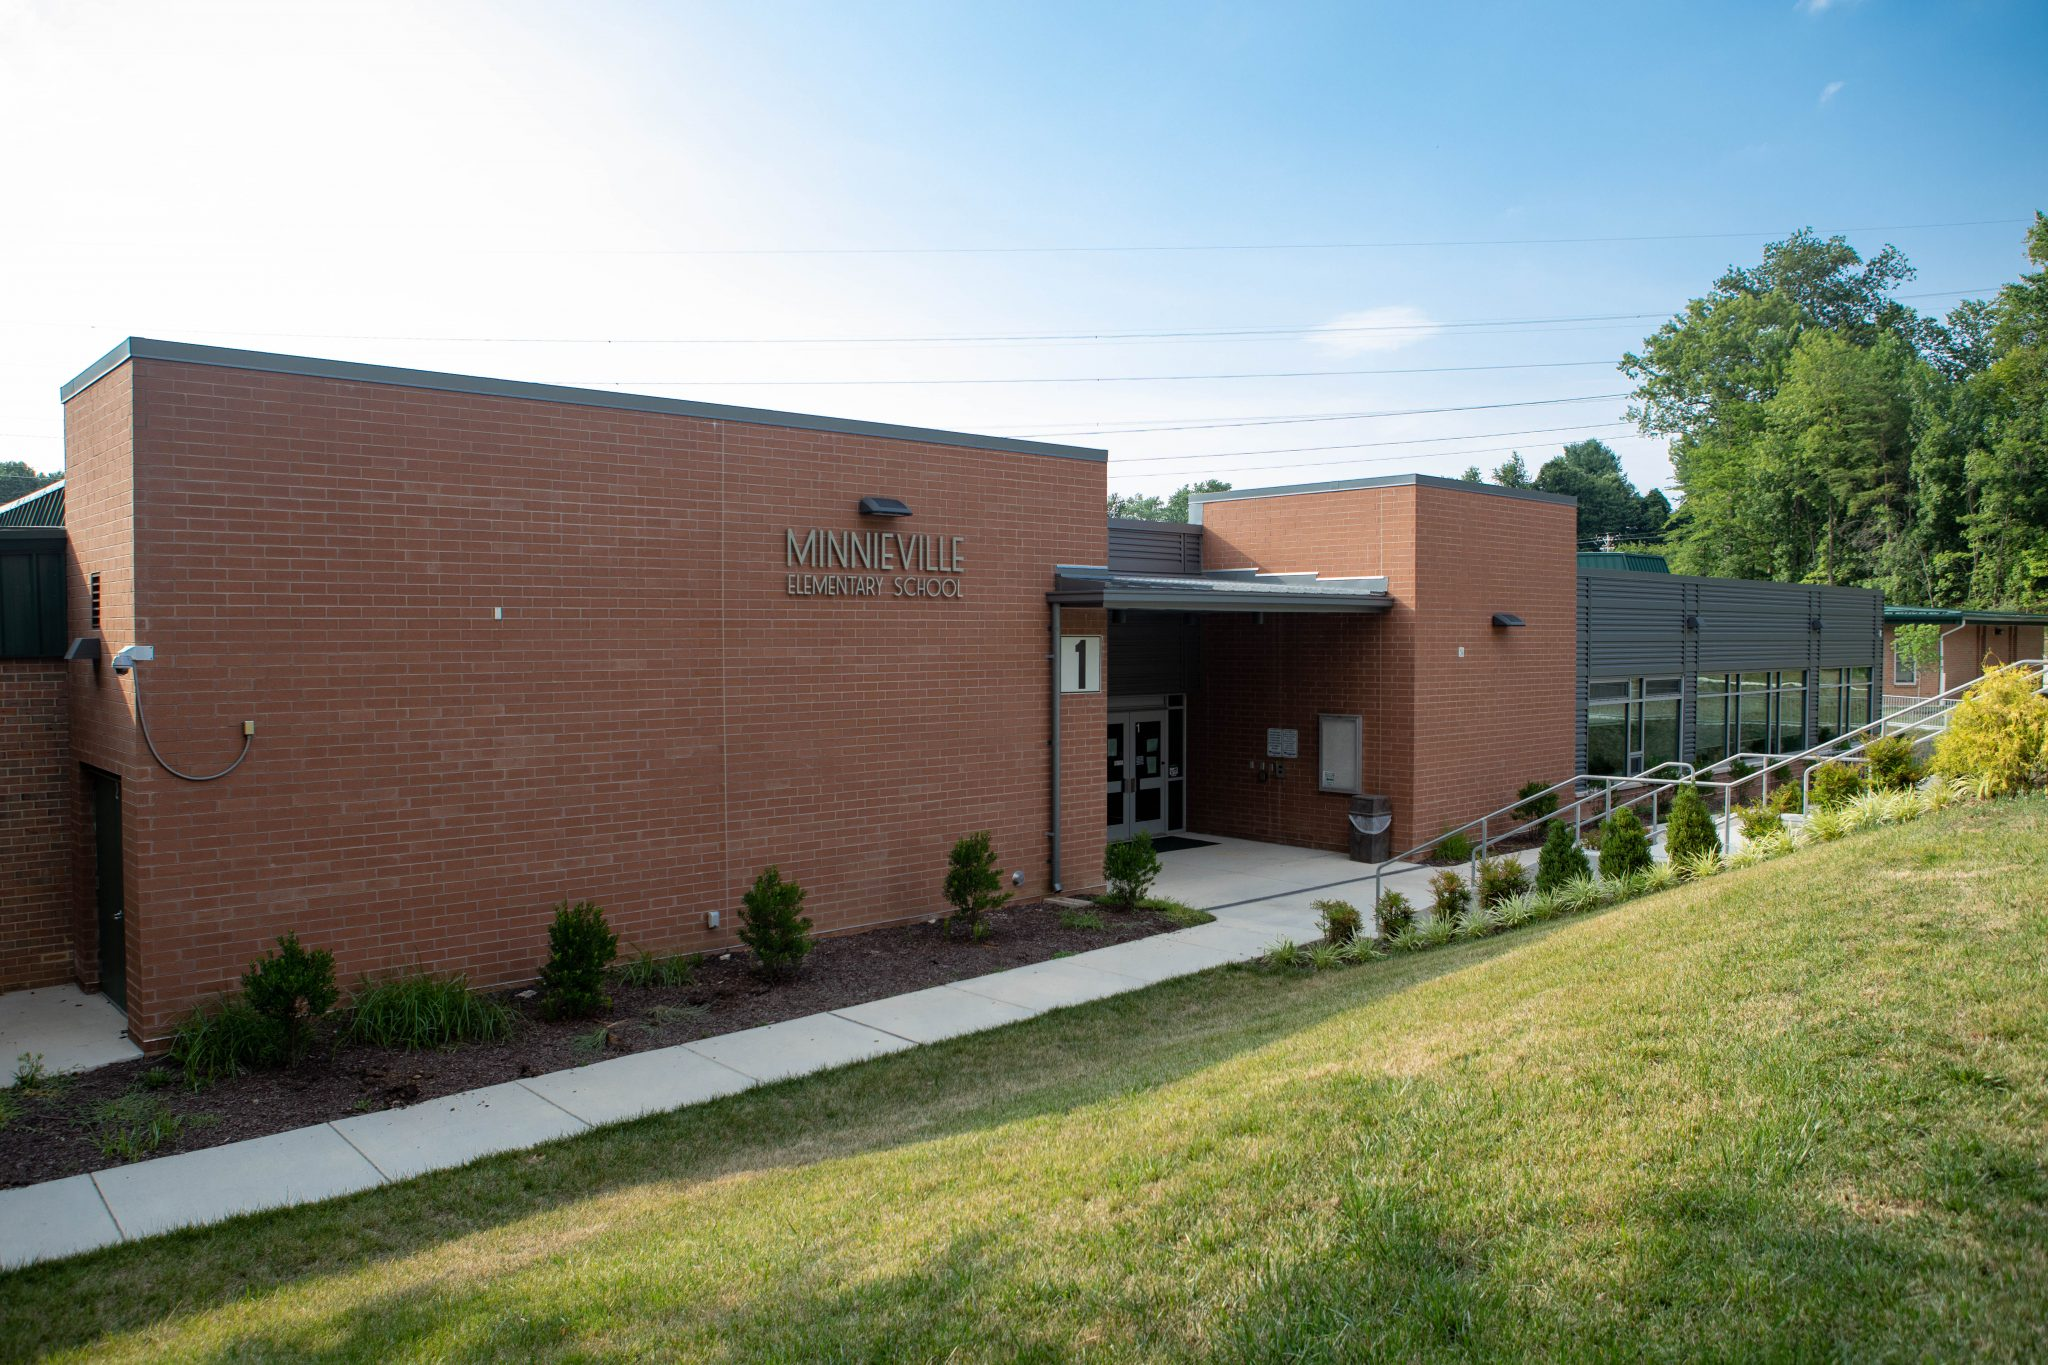 PWCS Minnieville Elementary School Renovation and Additions